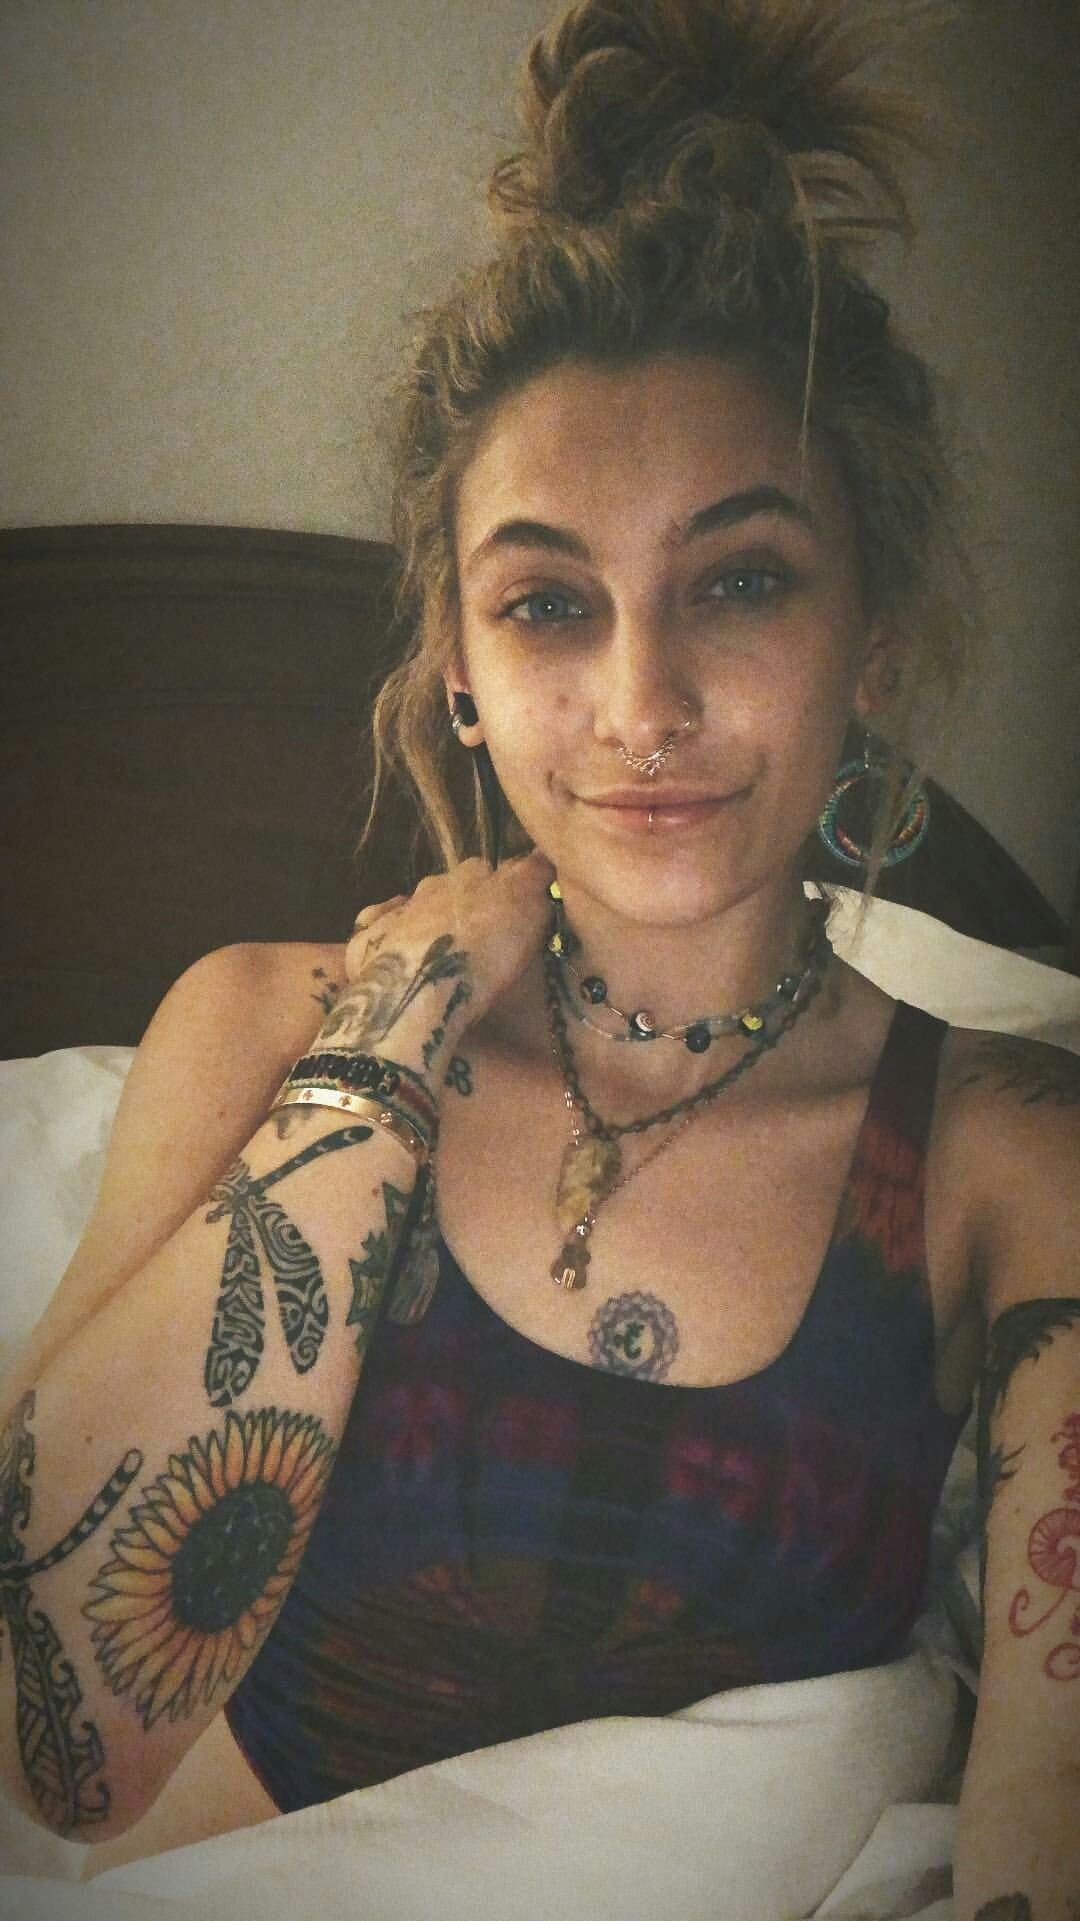 Pin By Ava May On Tattoos And Piercings Paris Jackson Tattoo